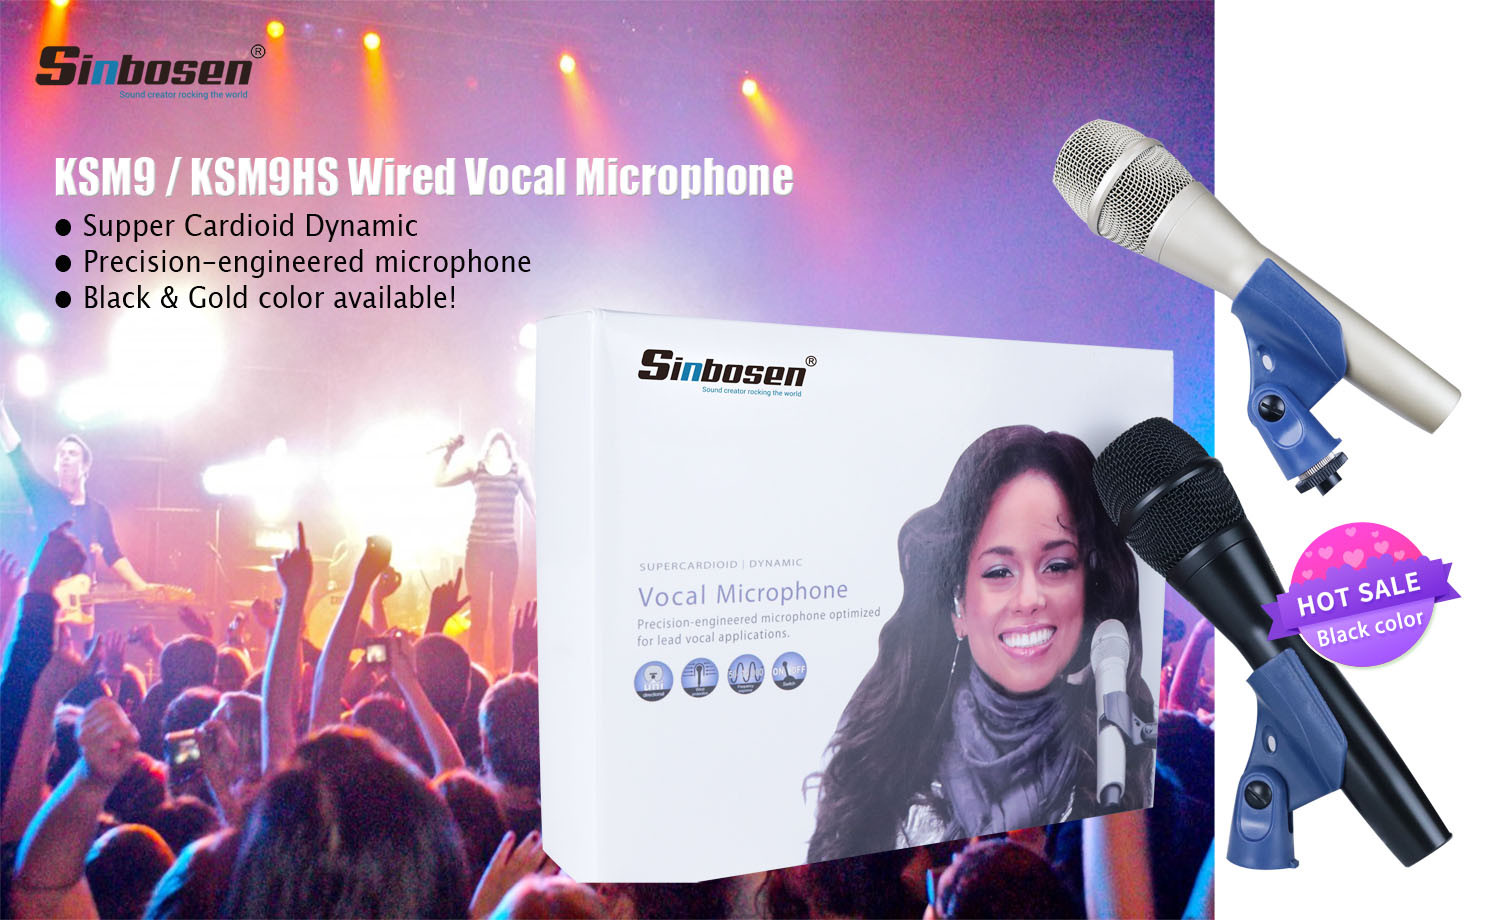 Send an inquiry about KSM9 microphone